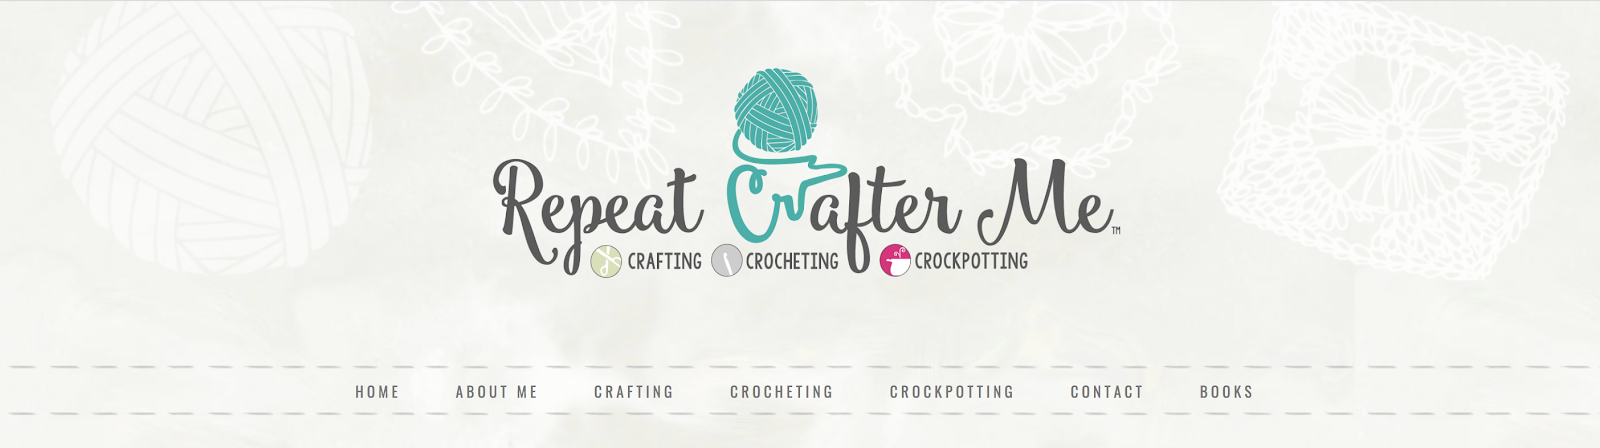 Repeat Crafter Me Creative Example of a Good Name for a Blog